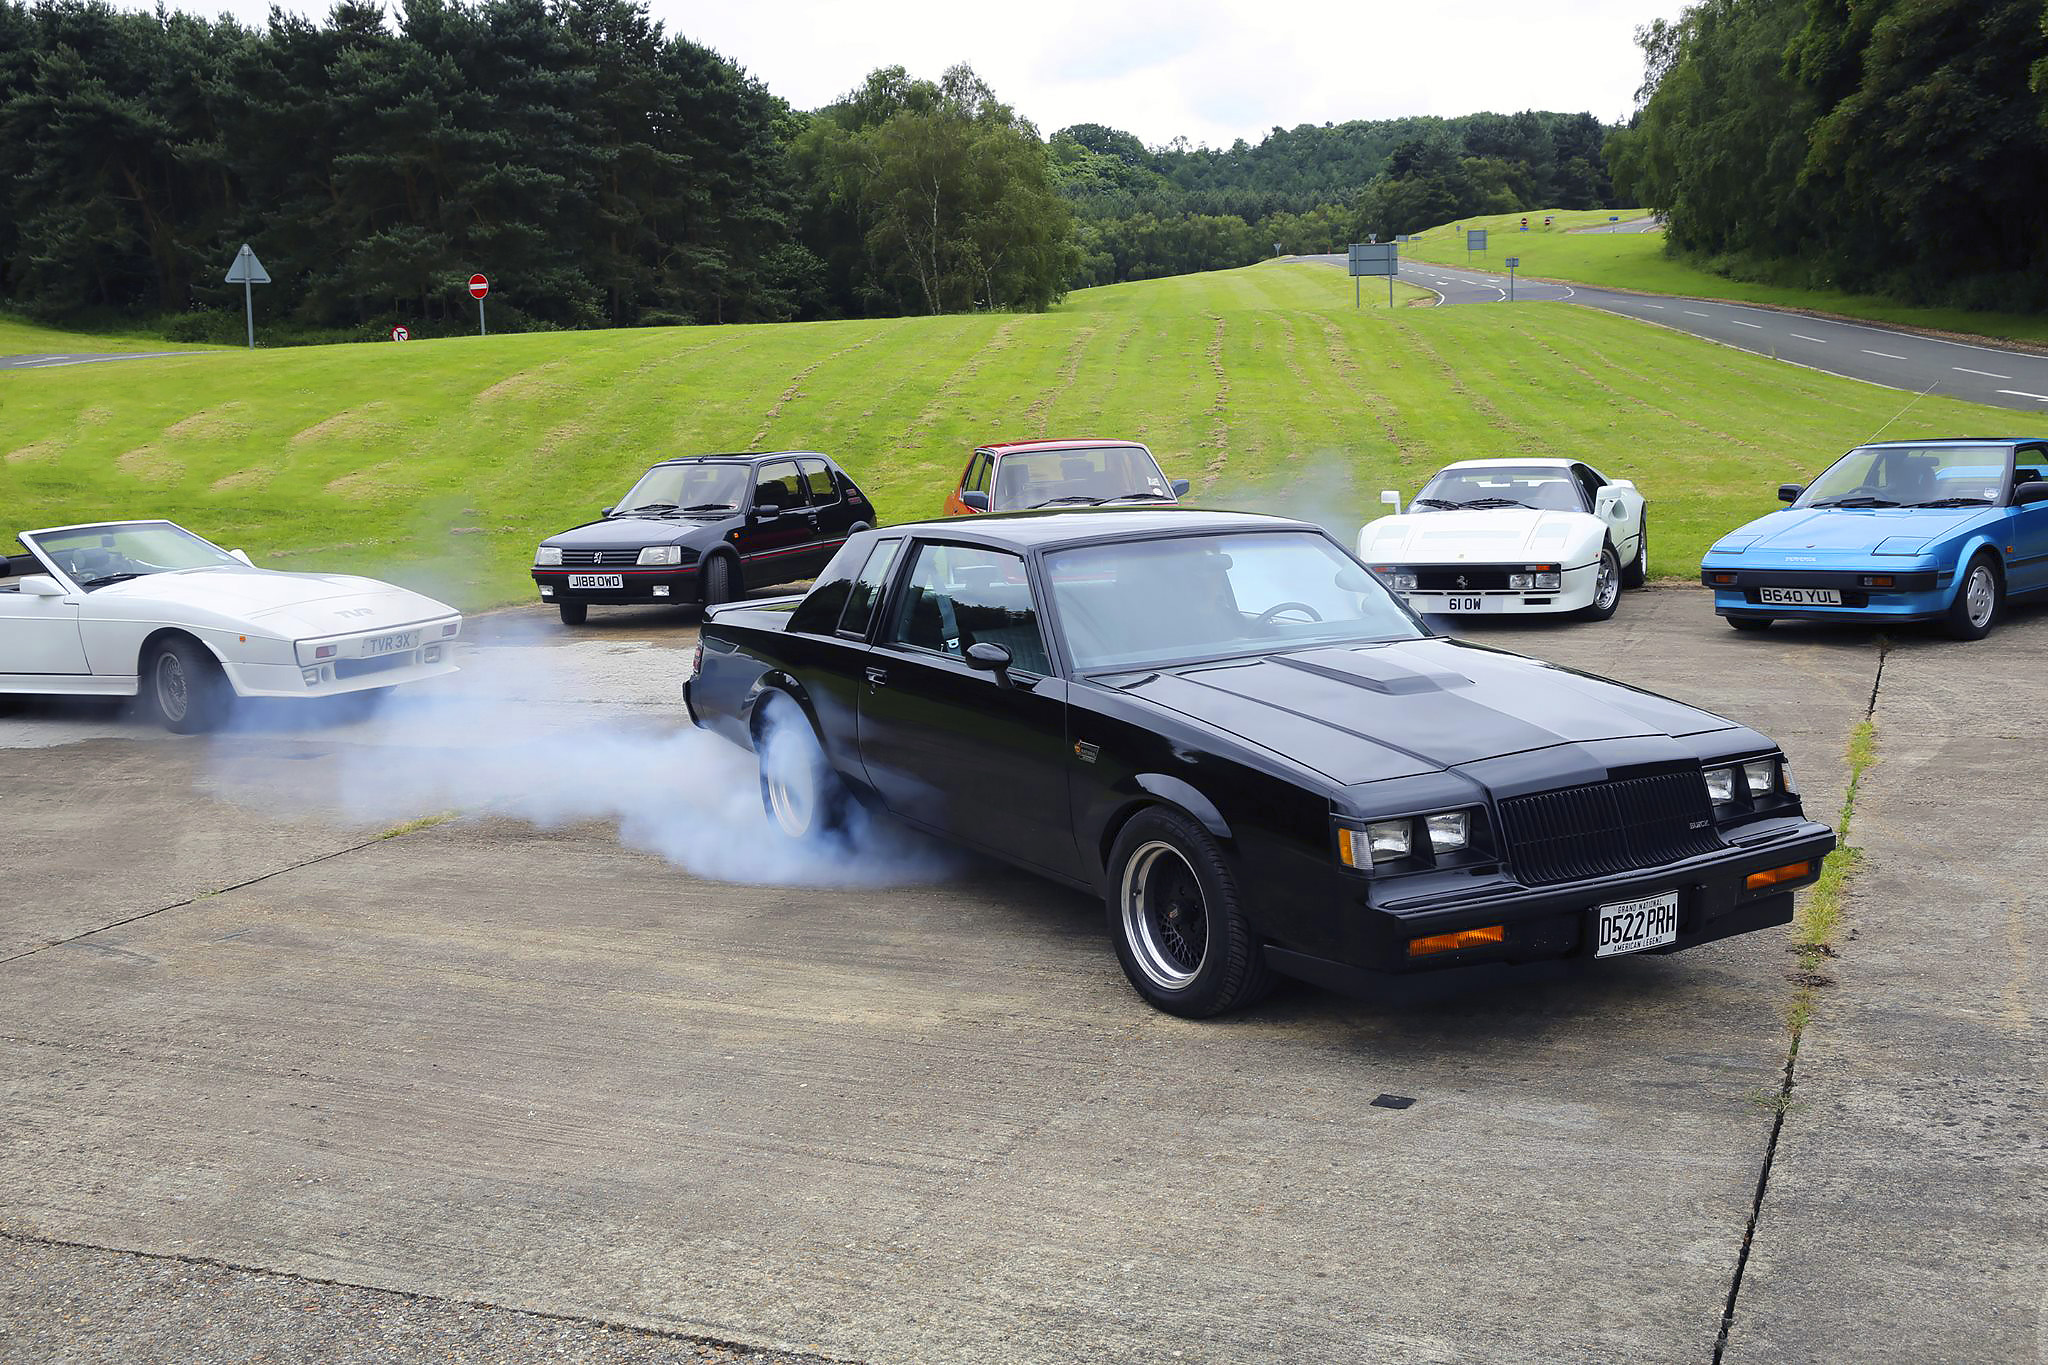 Giant Test - Ferrari 288 GTO, Toyota MR2, Peugeot 205 GTi, TVR 390SE, BMW M535i E28 and Buick Grand National Turbo